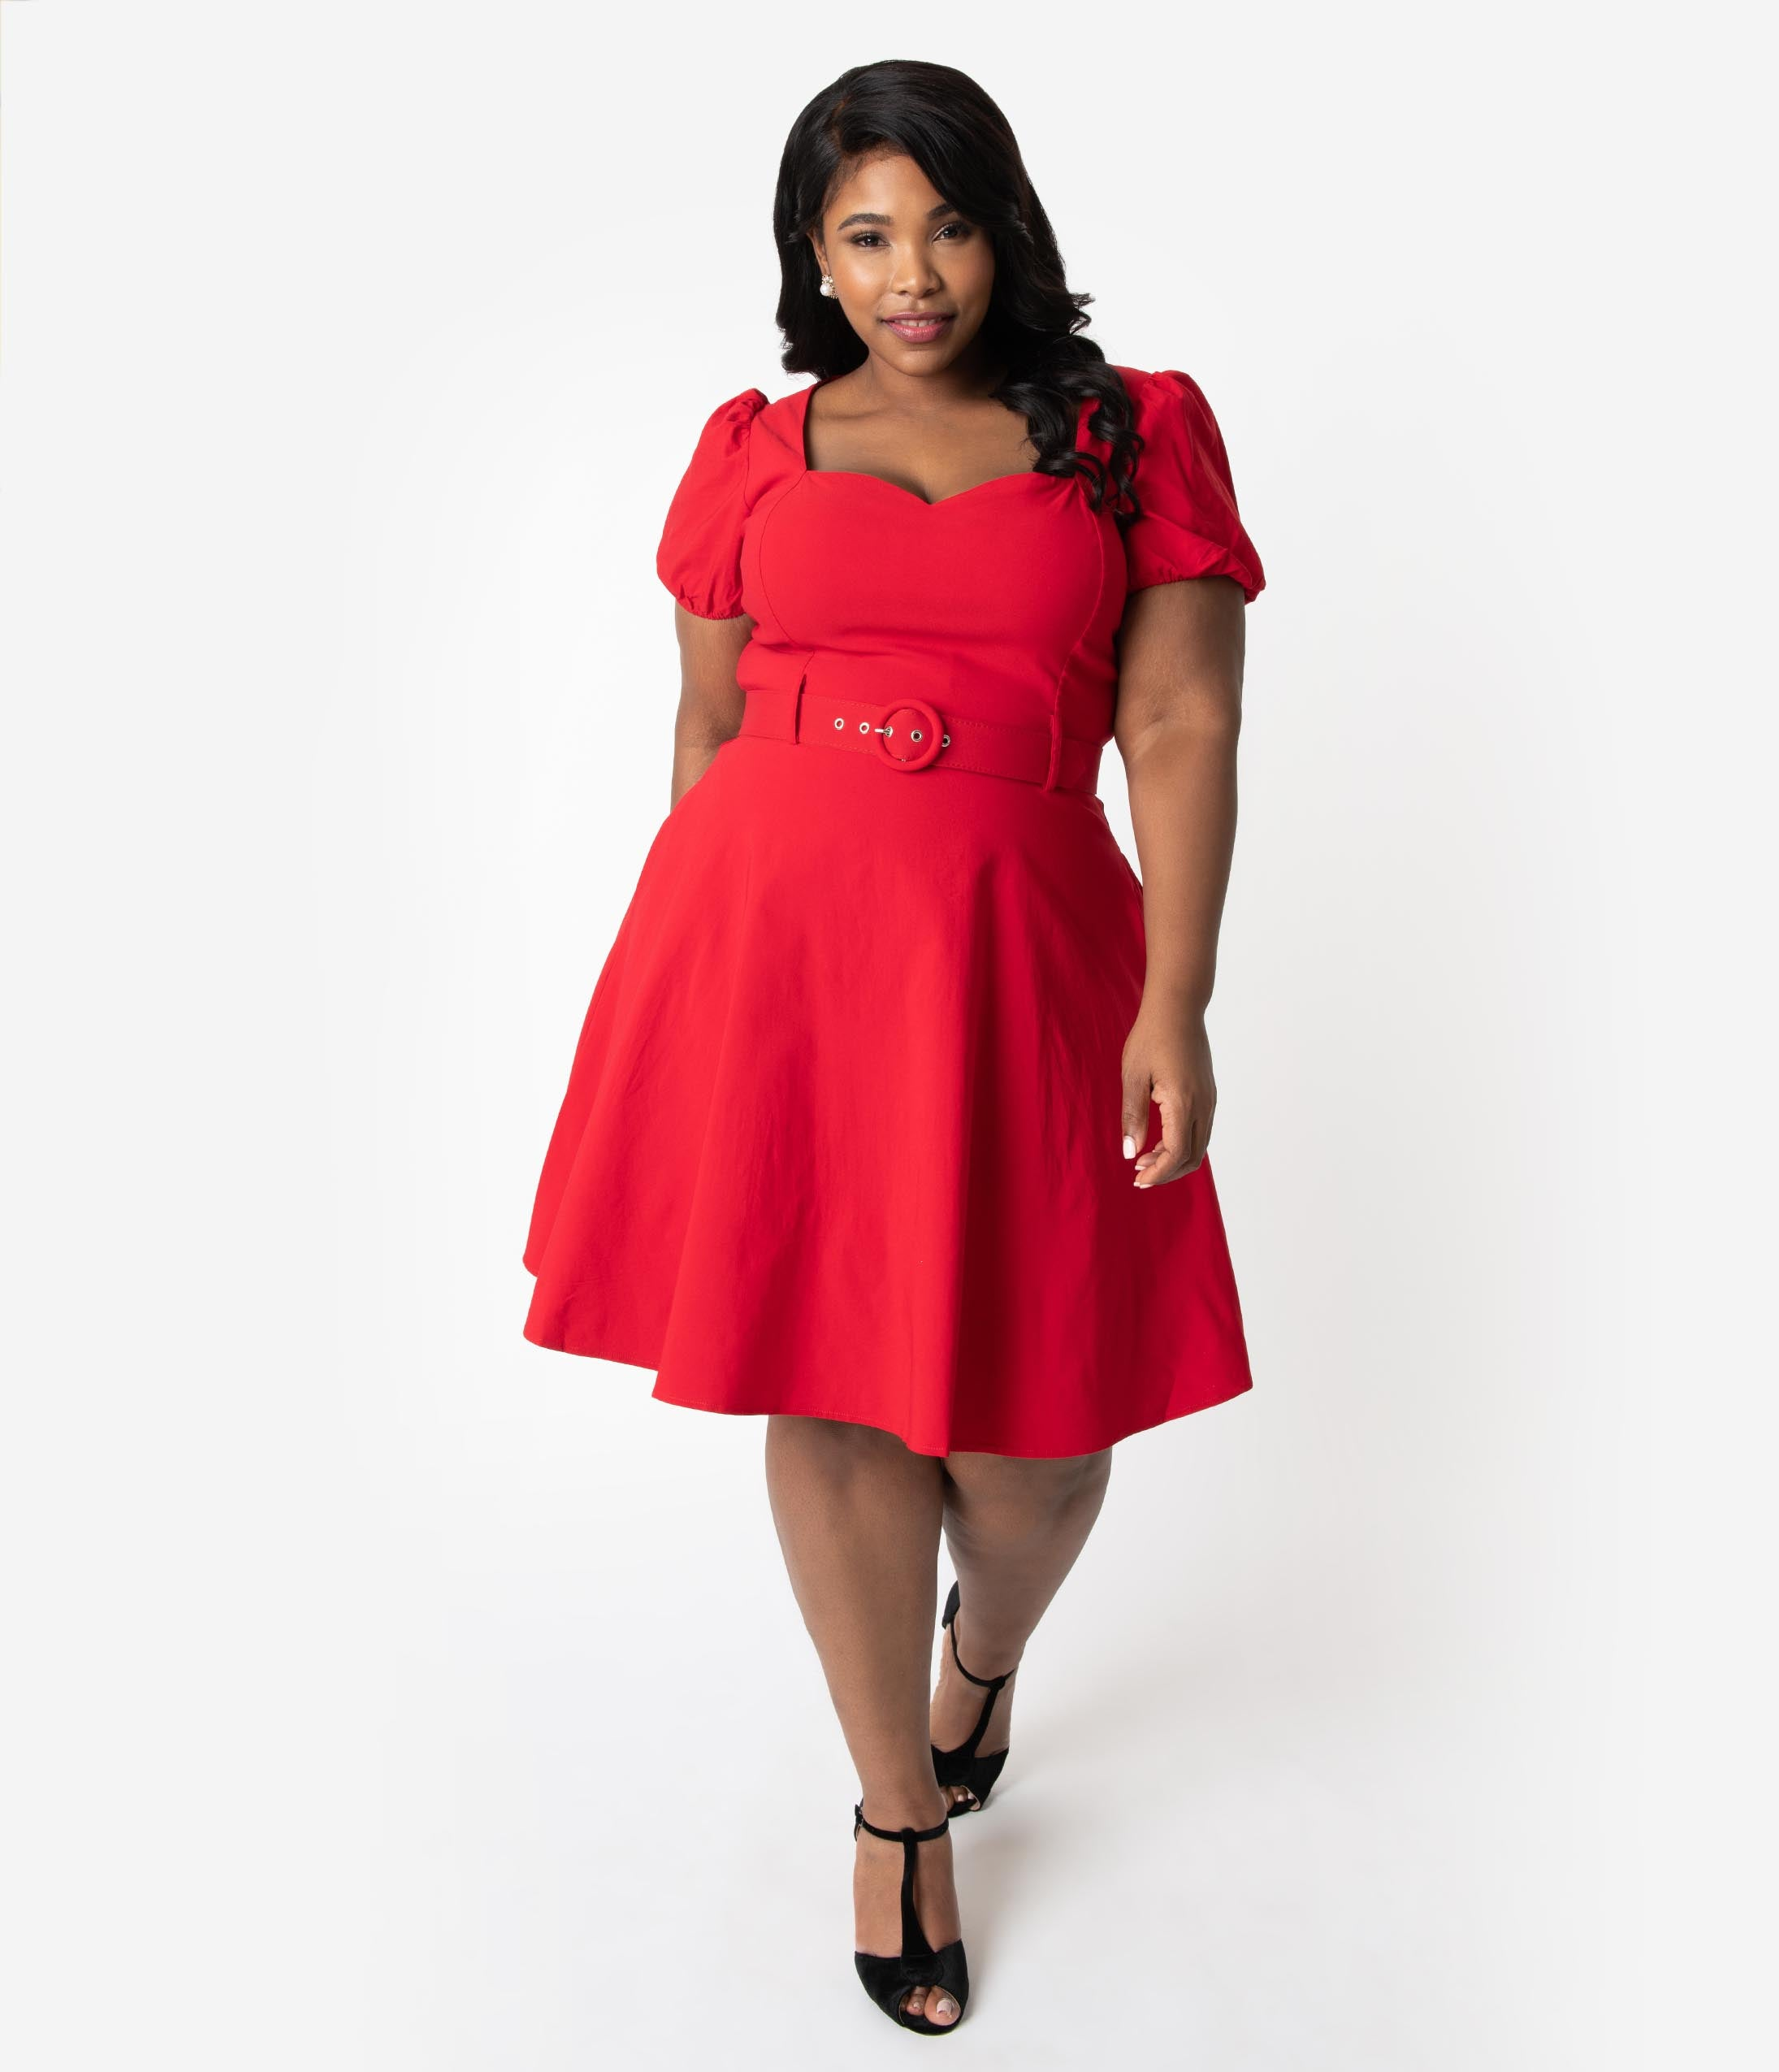 1950s Plus Size Dresses 8d4dc43db